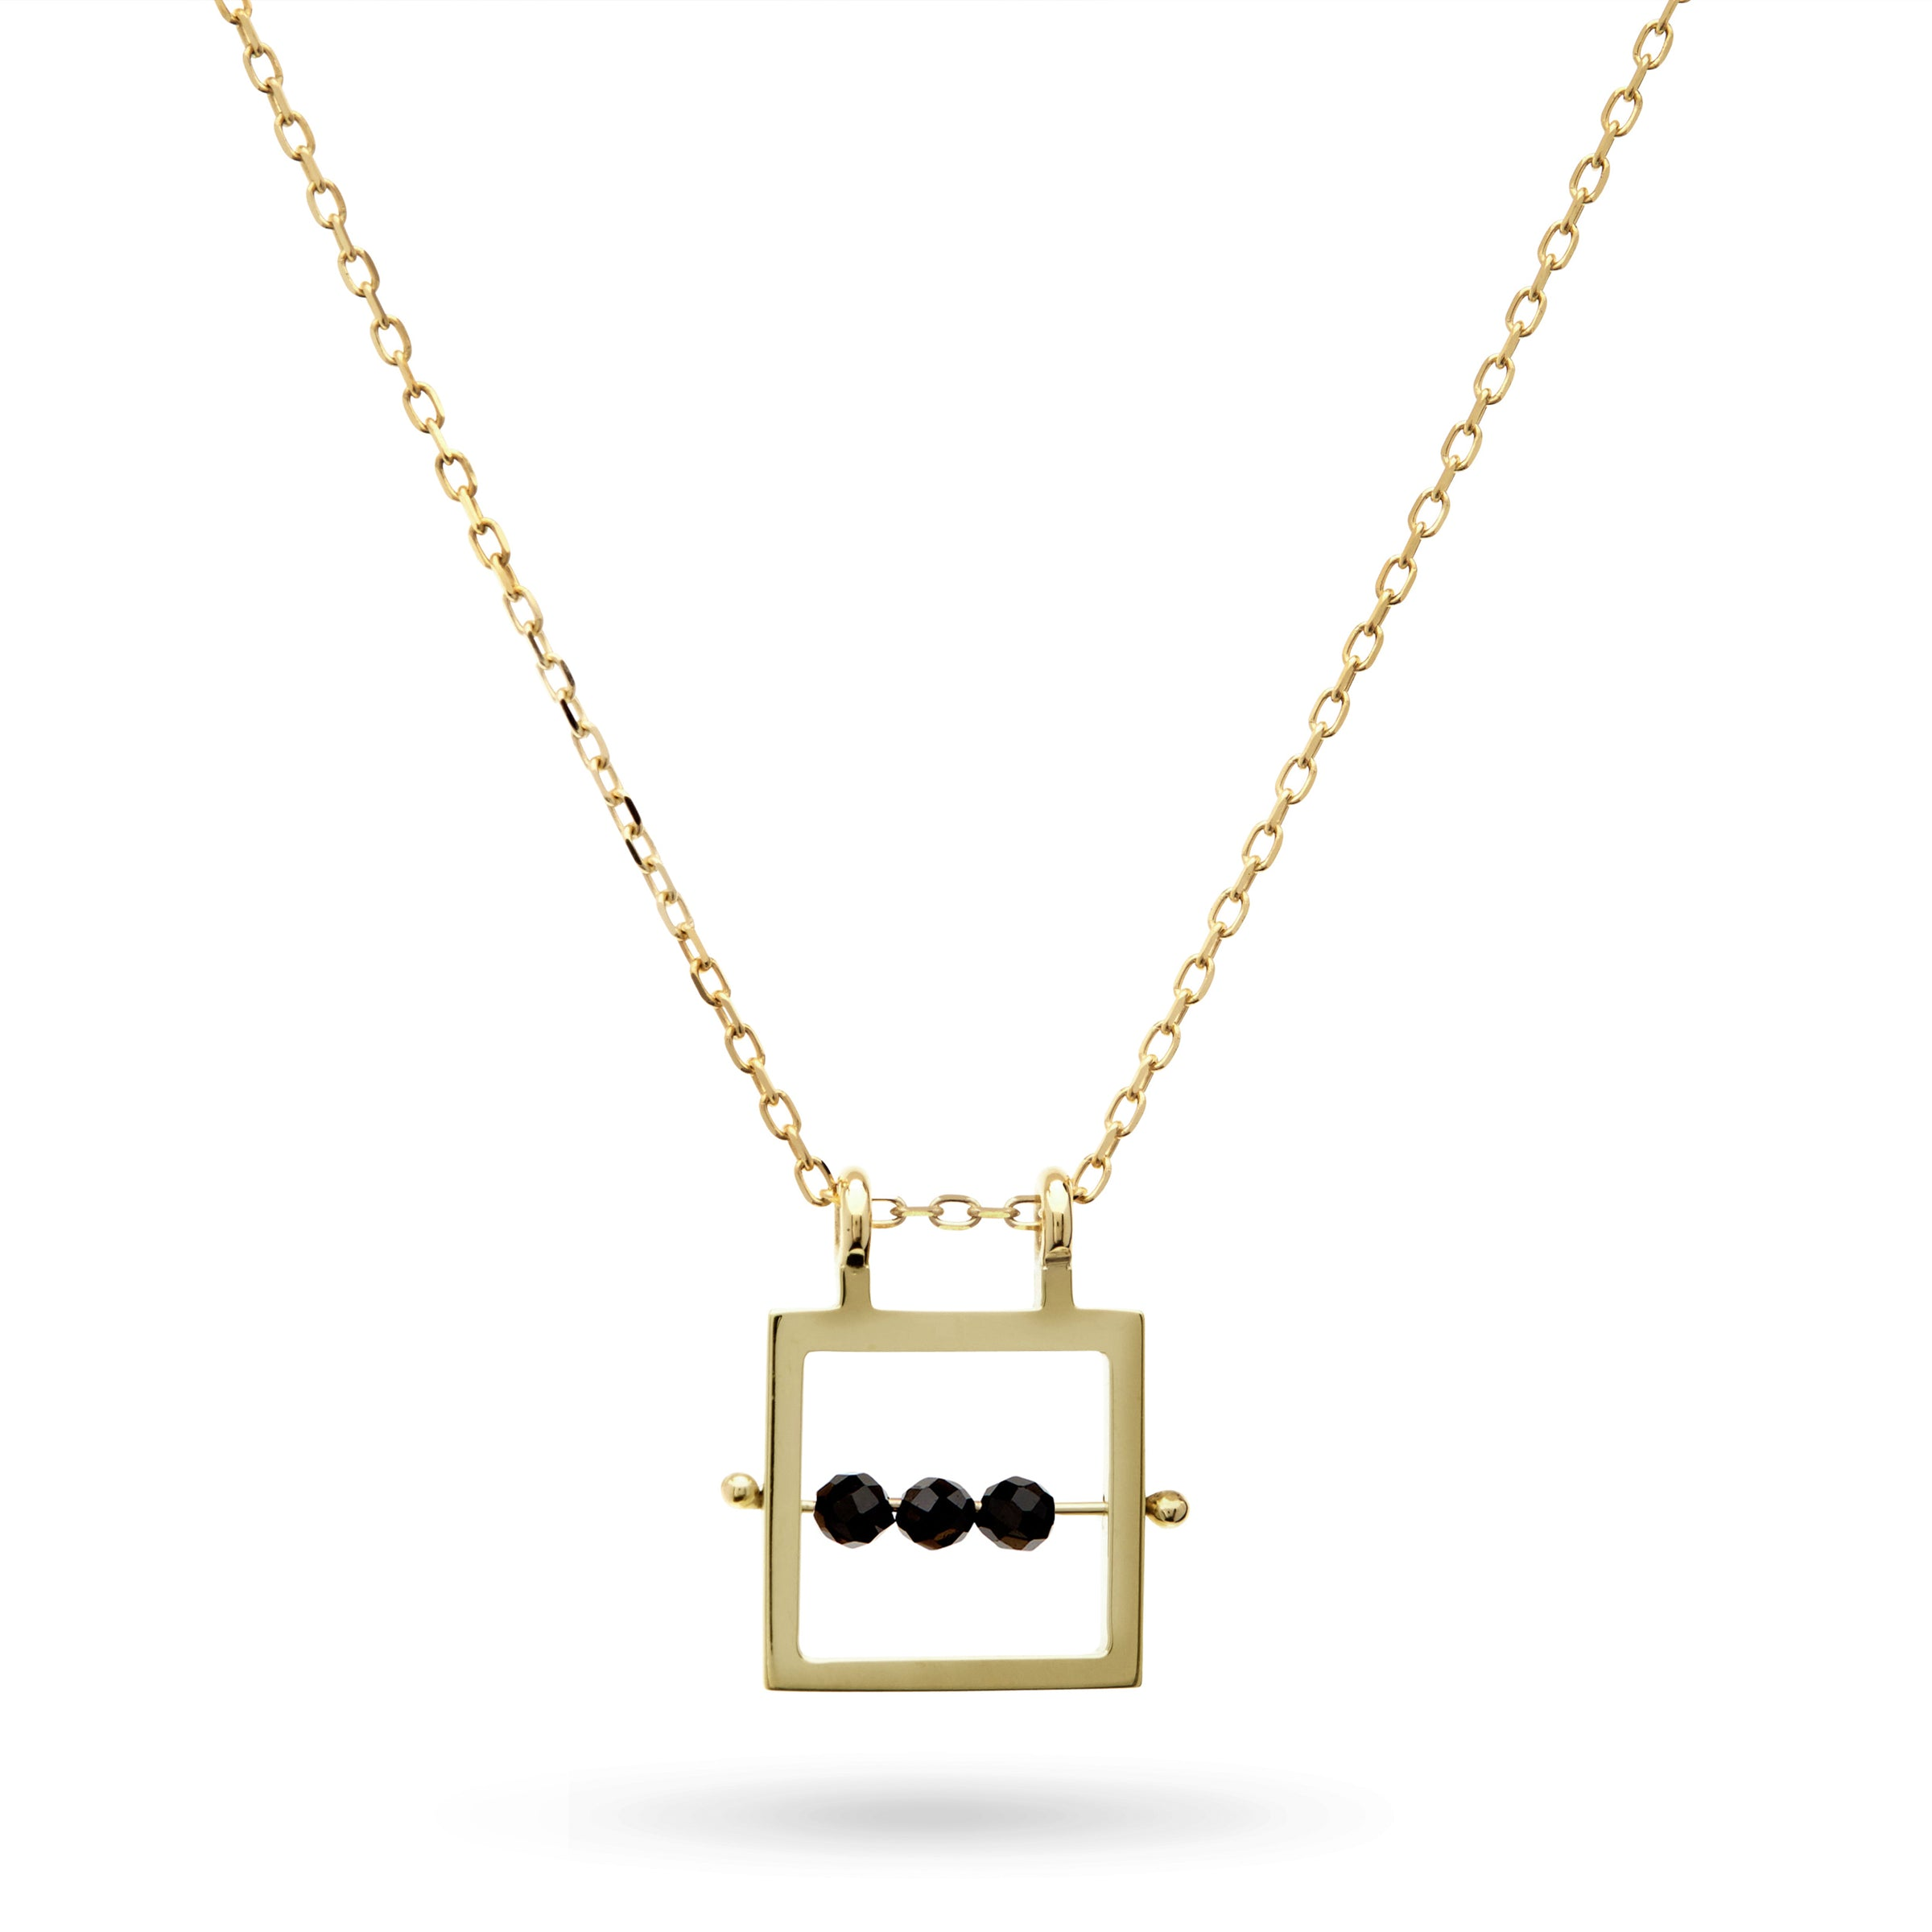 Square Black Spinel Abacus Necklace in Yellow Gold